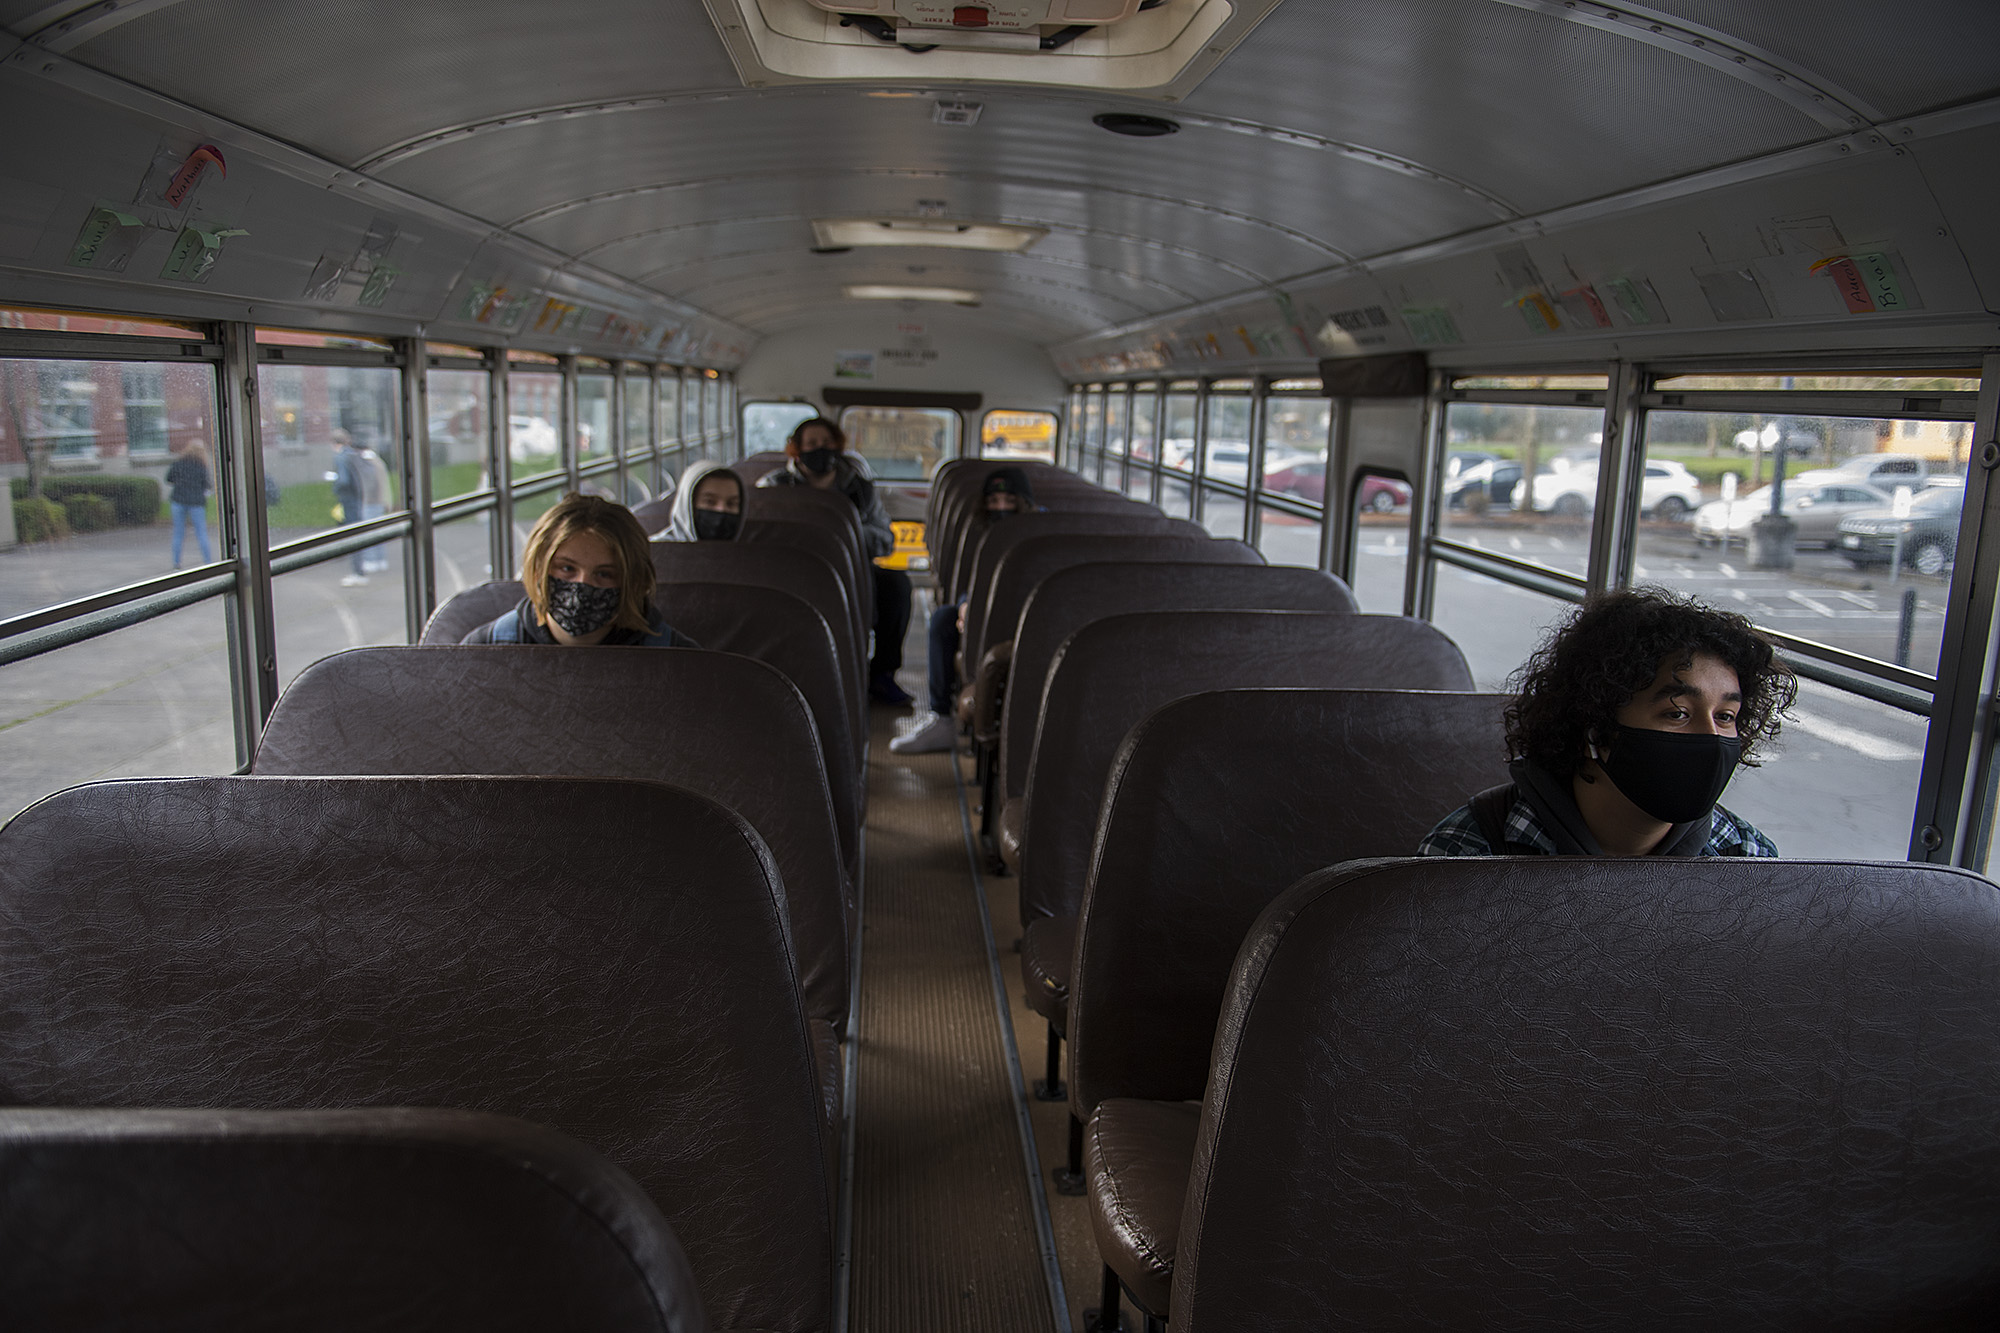 Senior Anthony Lozano, 17, right, joins fellow students on board the school bus as they wait to attend classes in person at Heritage High School on Thursday morning, March 4, 2021. Teachers and staff welcomed back students in all high school grades for the first time since March 13 when schools closed for coronavirus.